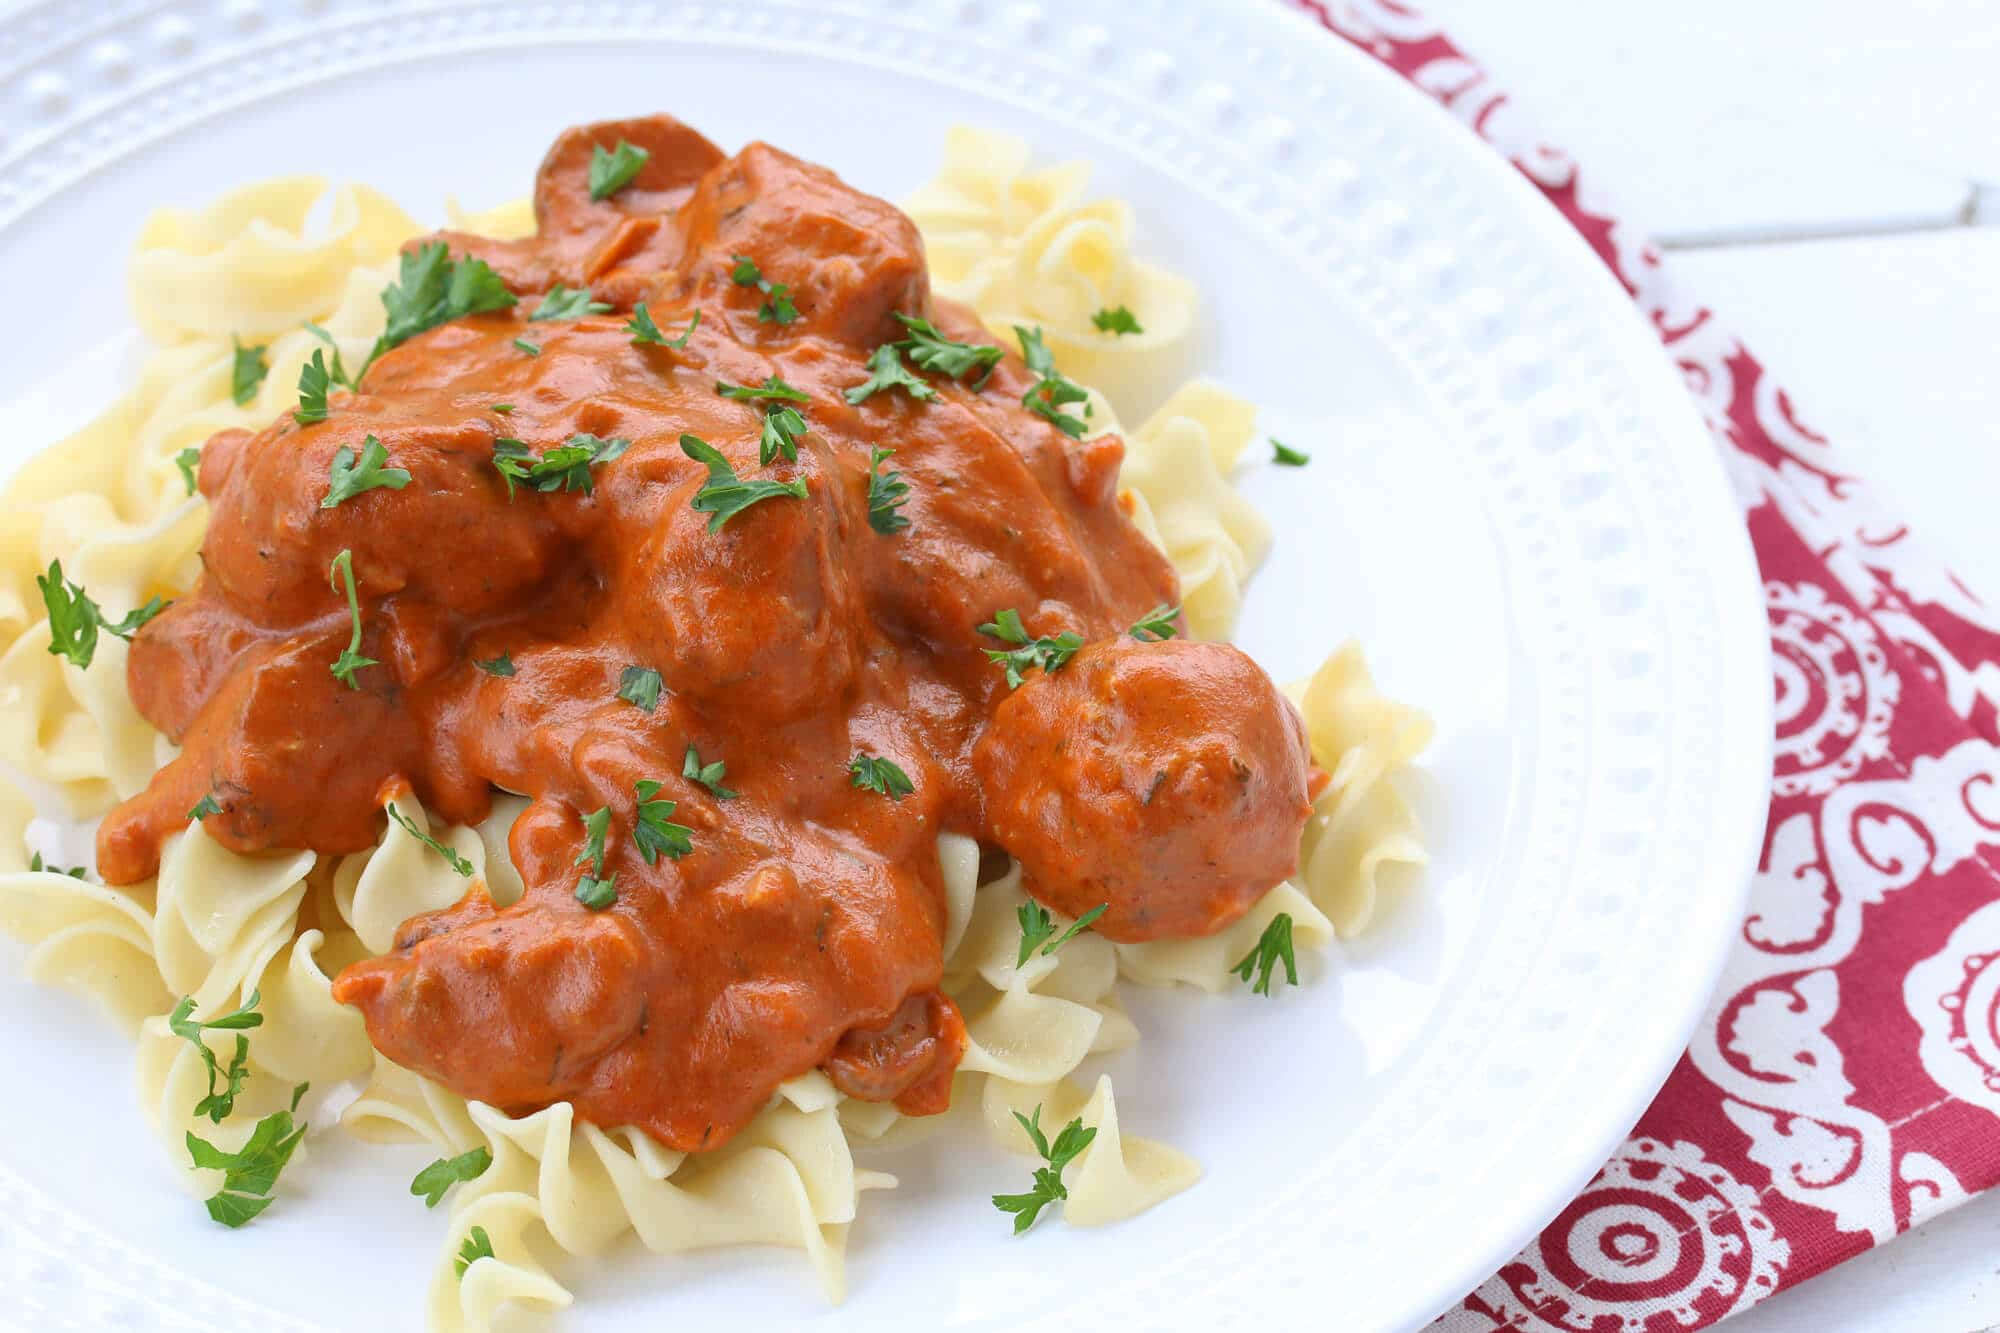 Hungarian Meatballs - The Daring Gourmet